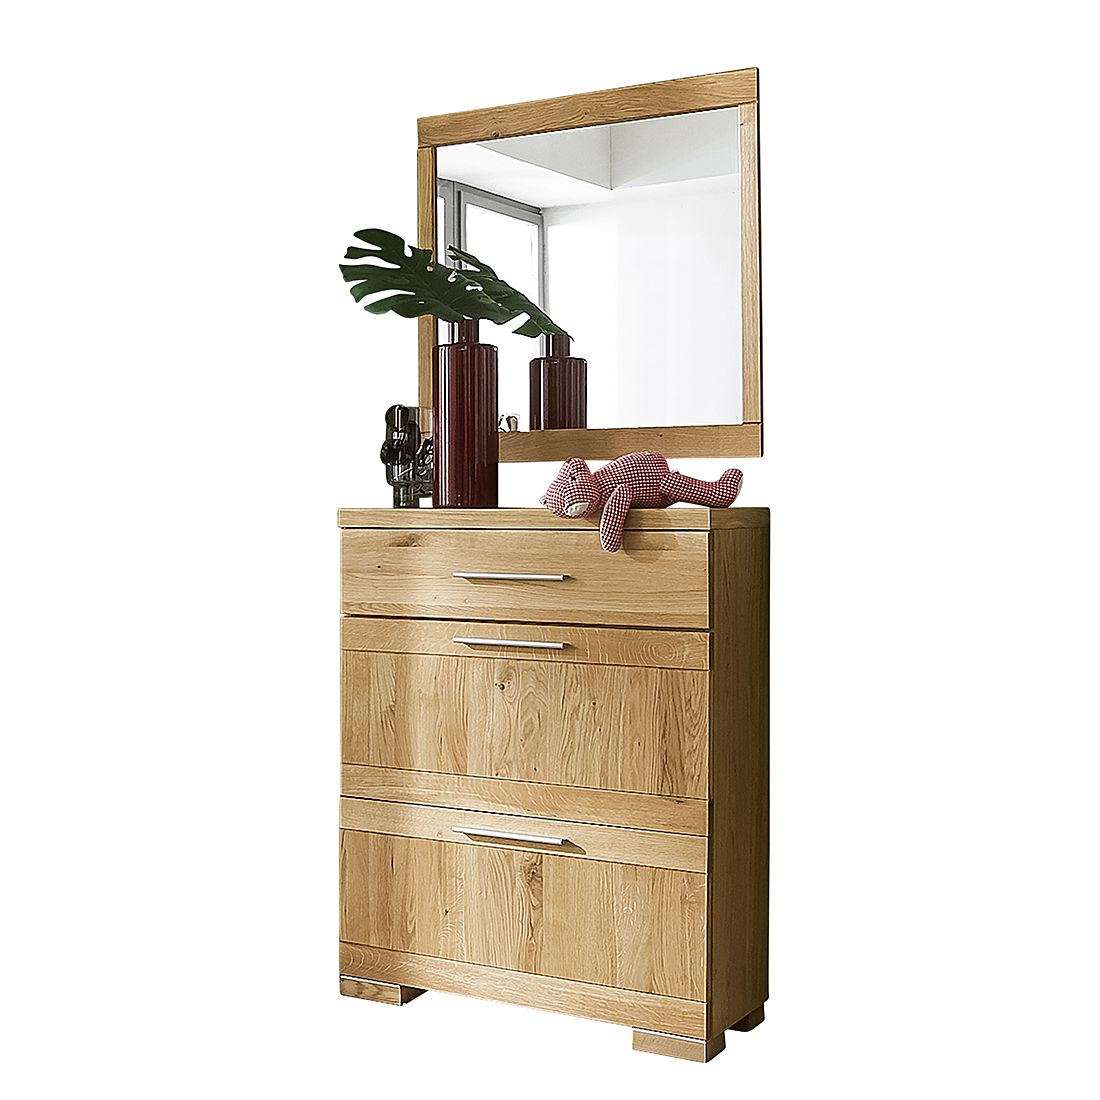 wandspiegel mit holzrahmen preisvergleiche erfahrungsberichte und kauf bei nextag. Black Bedroom Furniture Sets. Home Design Ideas